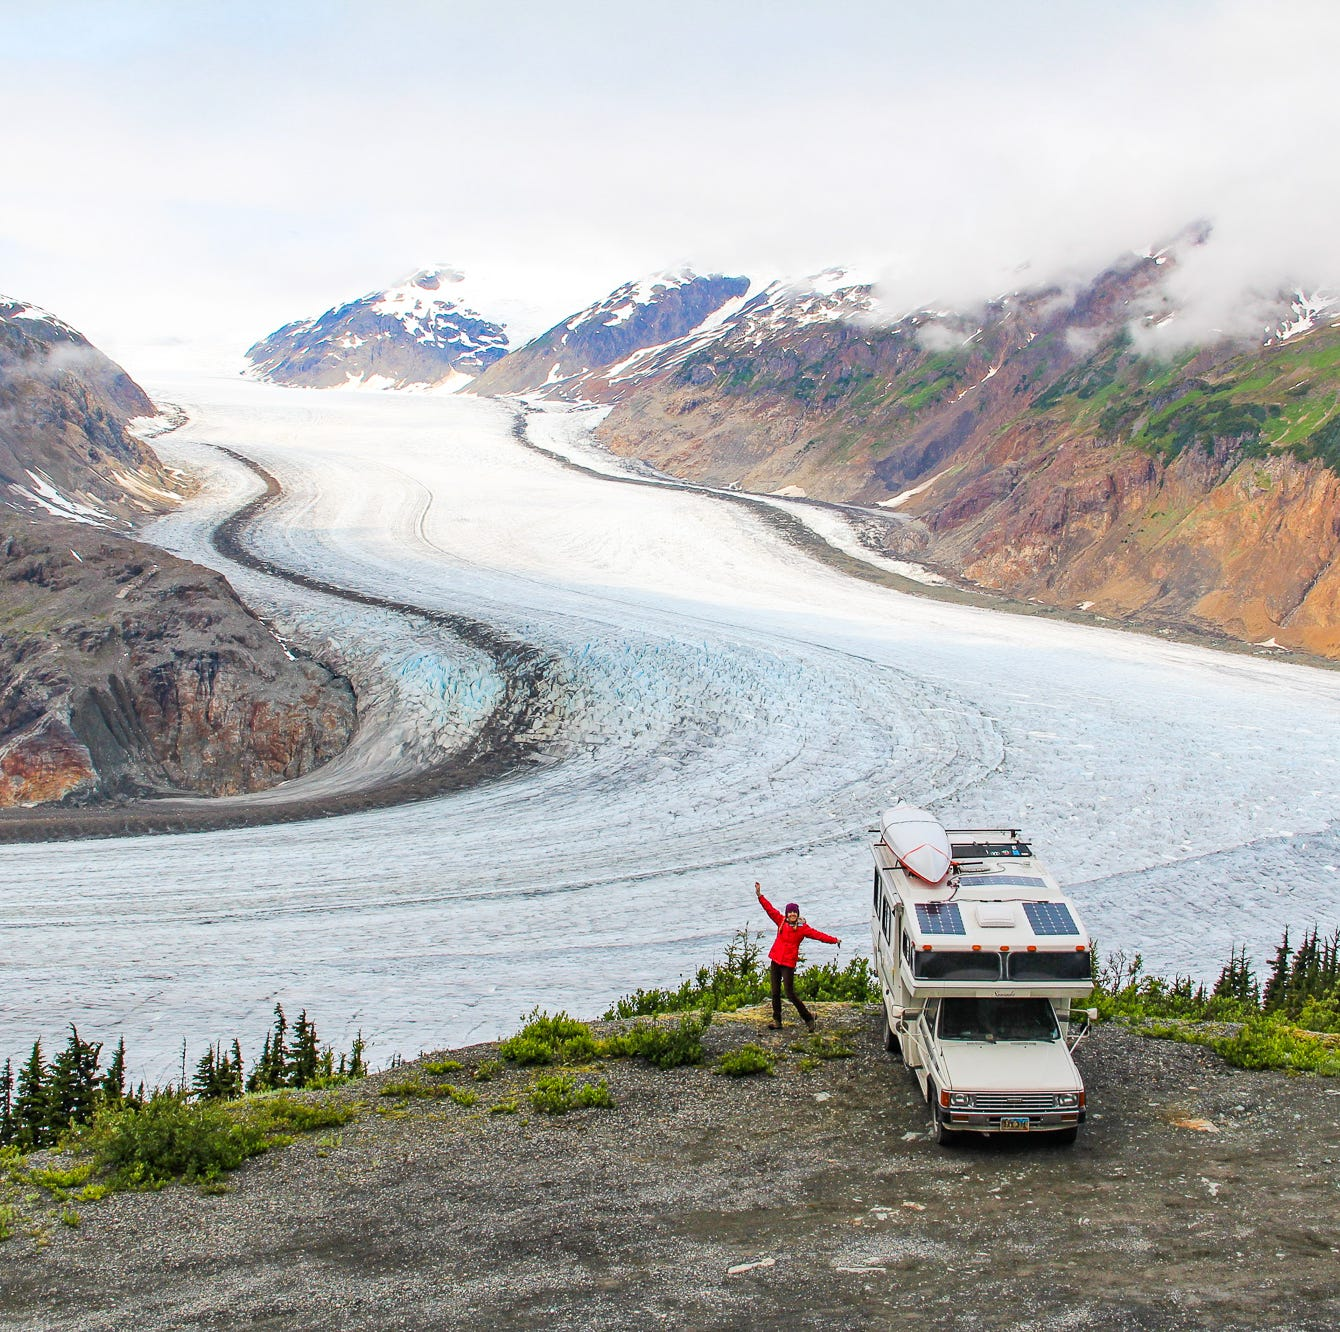 Mike and Anne Howard stopped at Salmon Glacier in British Columbia, Canada, as part of their more than 2,500-day honeymoon.